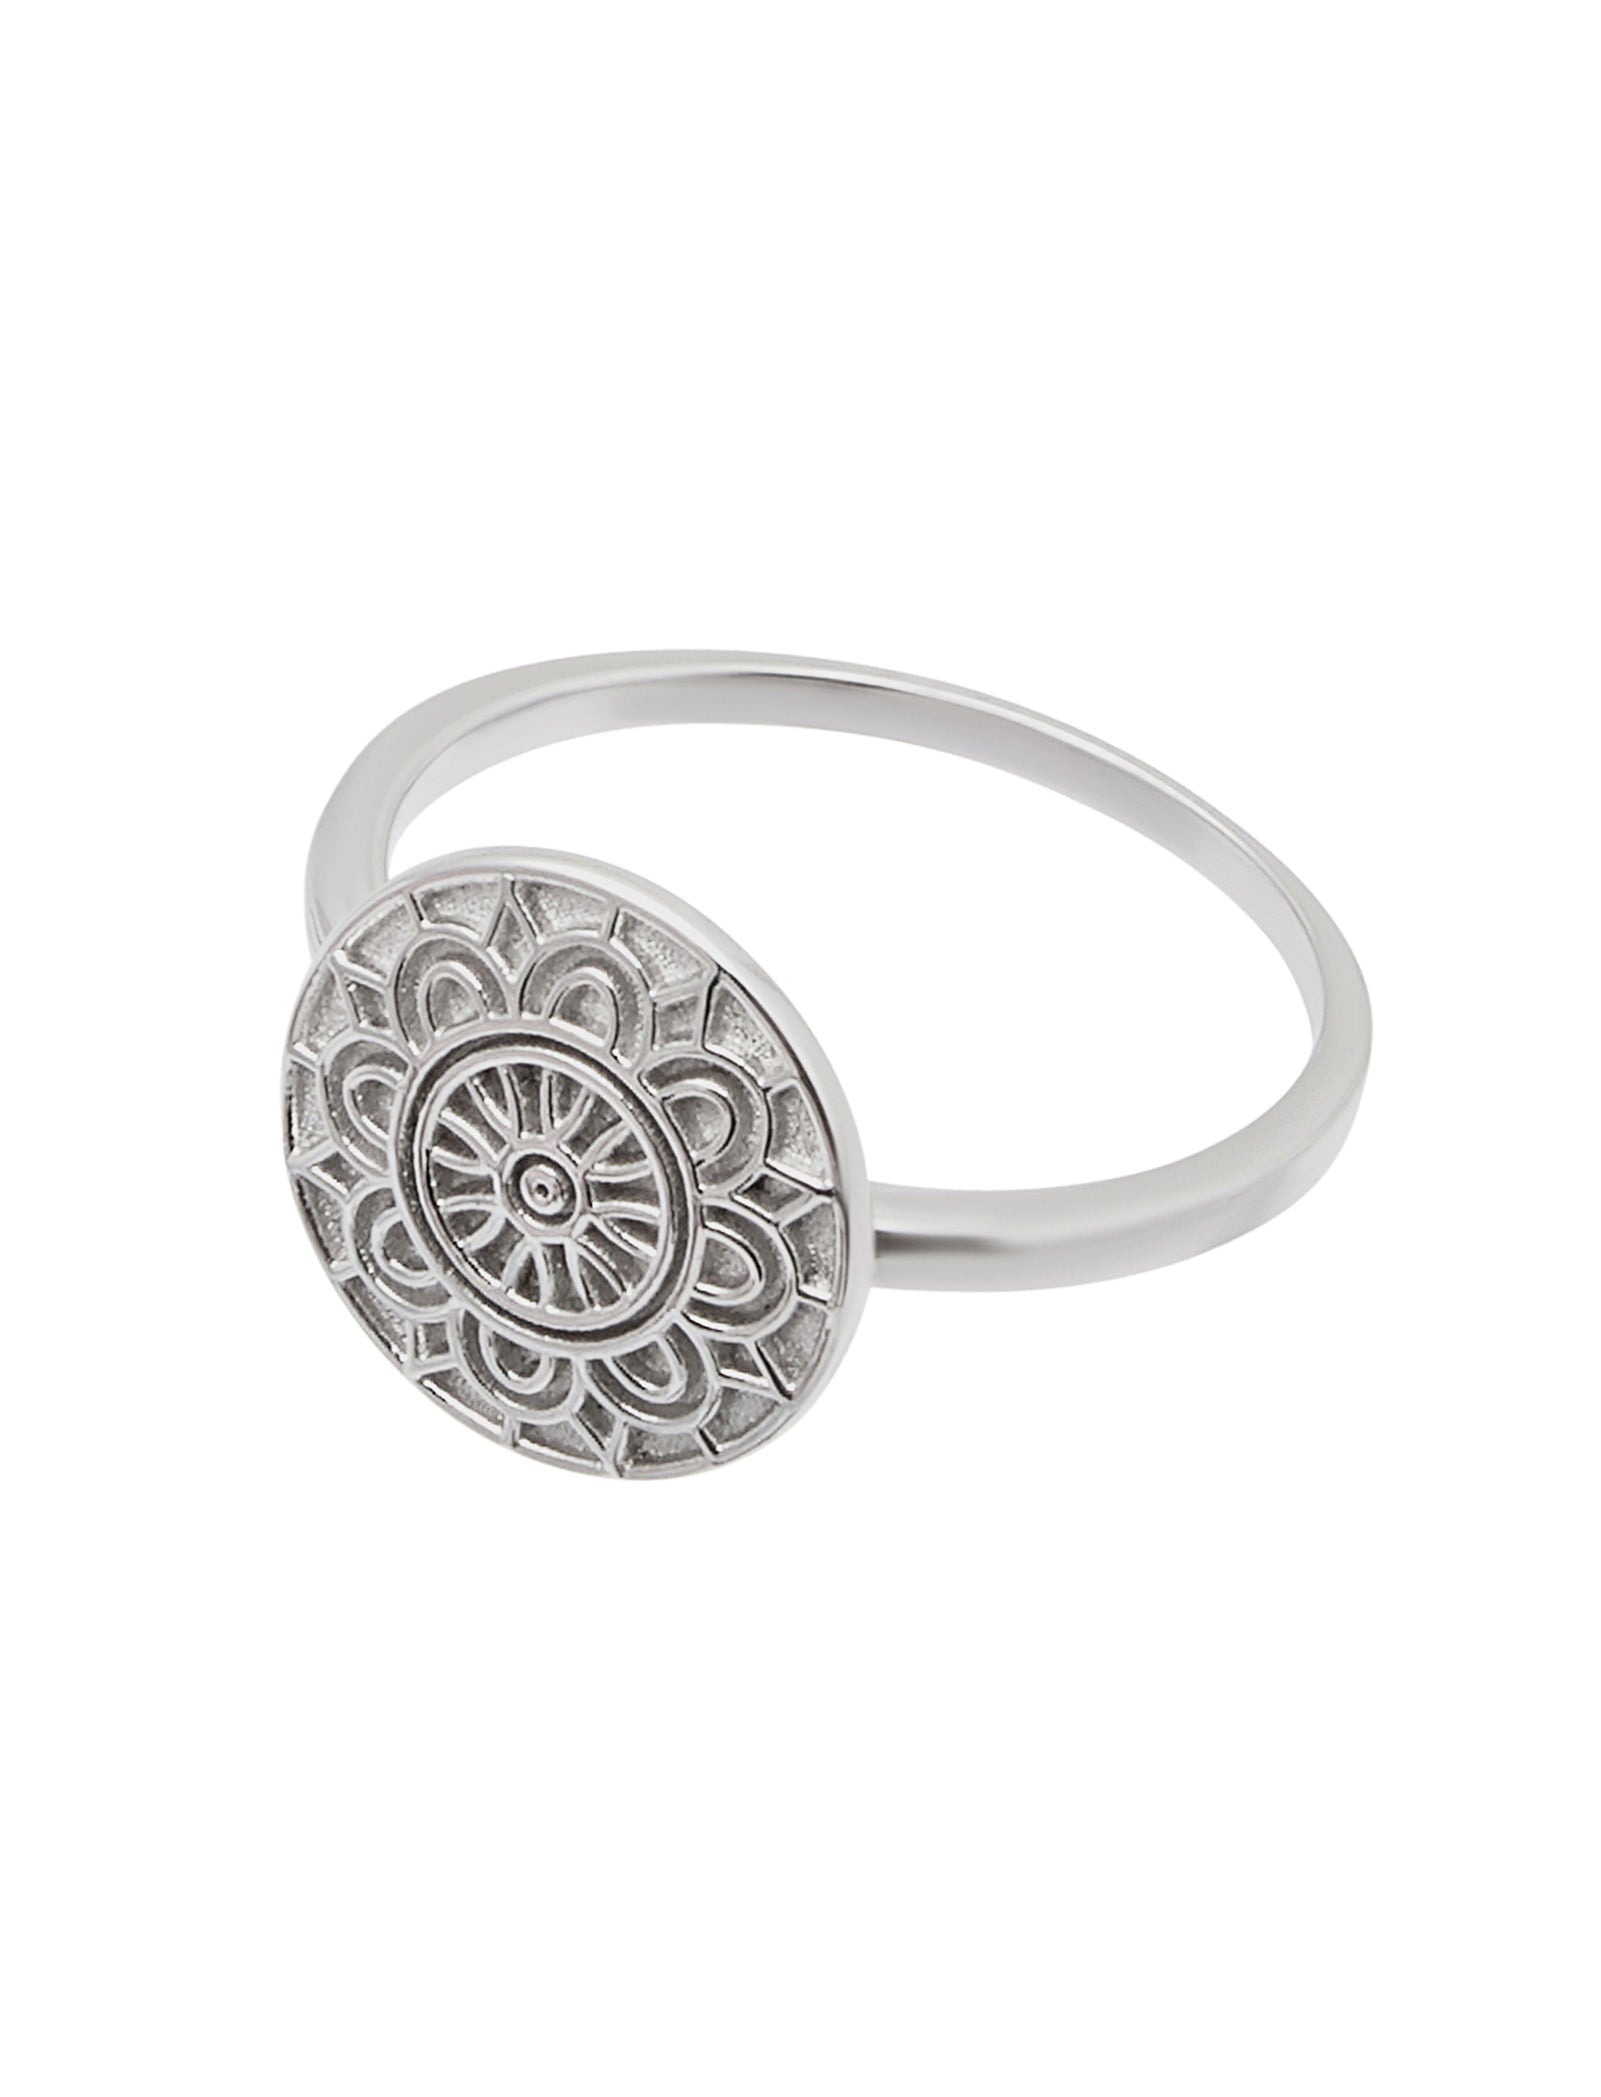 Pastiche  Water Poppy Ring - R1203-N